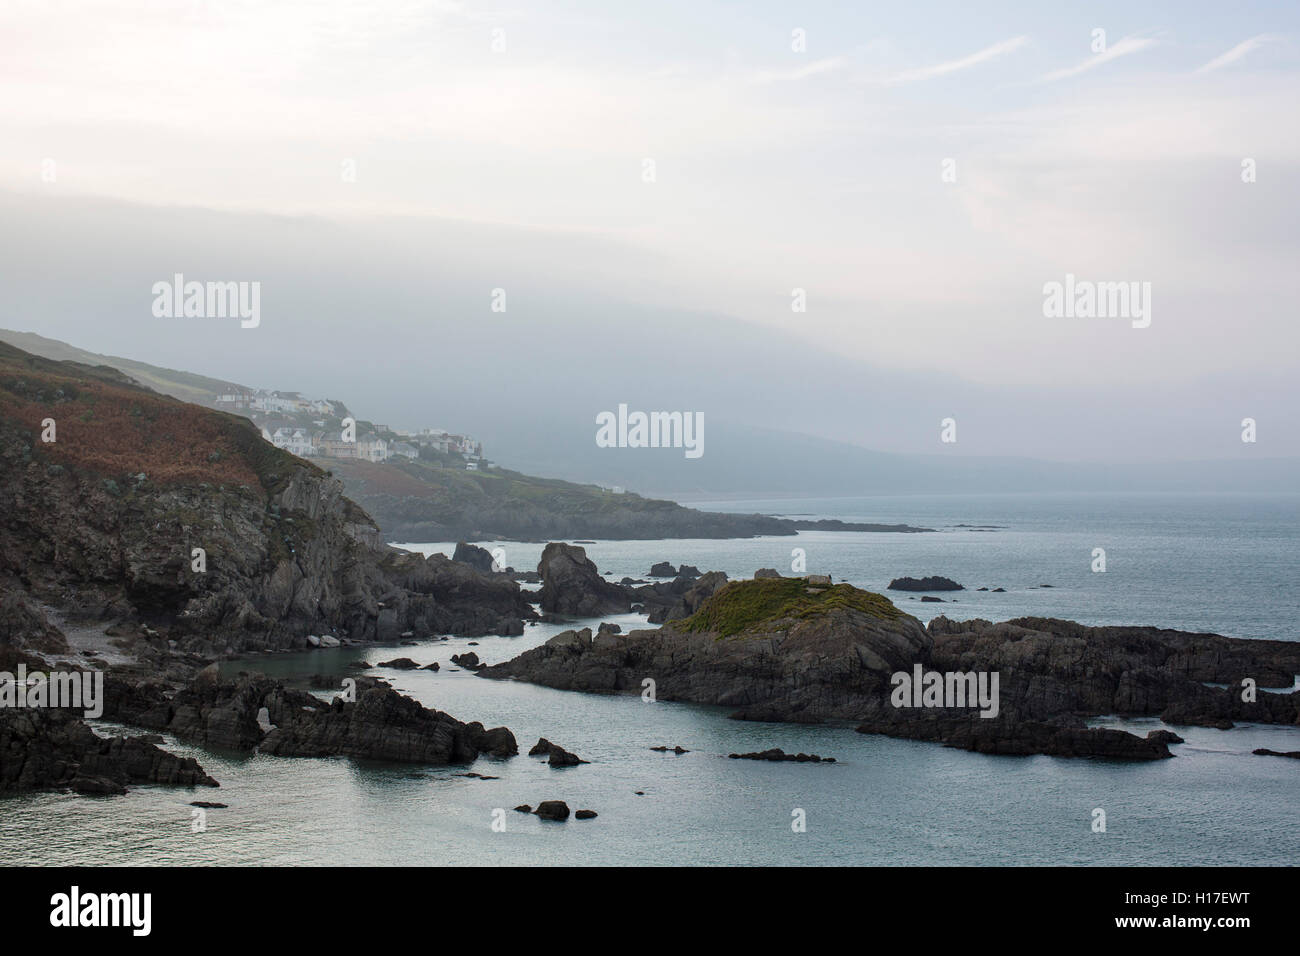 Grey misty coastline with rocks and houses on the south coast of the uk at Woolacombe adn Morthoe. - Stock Image